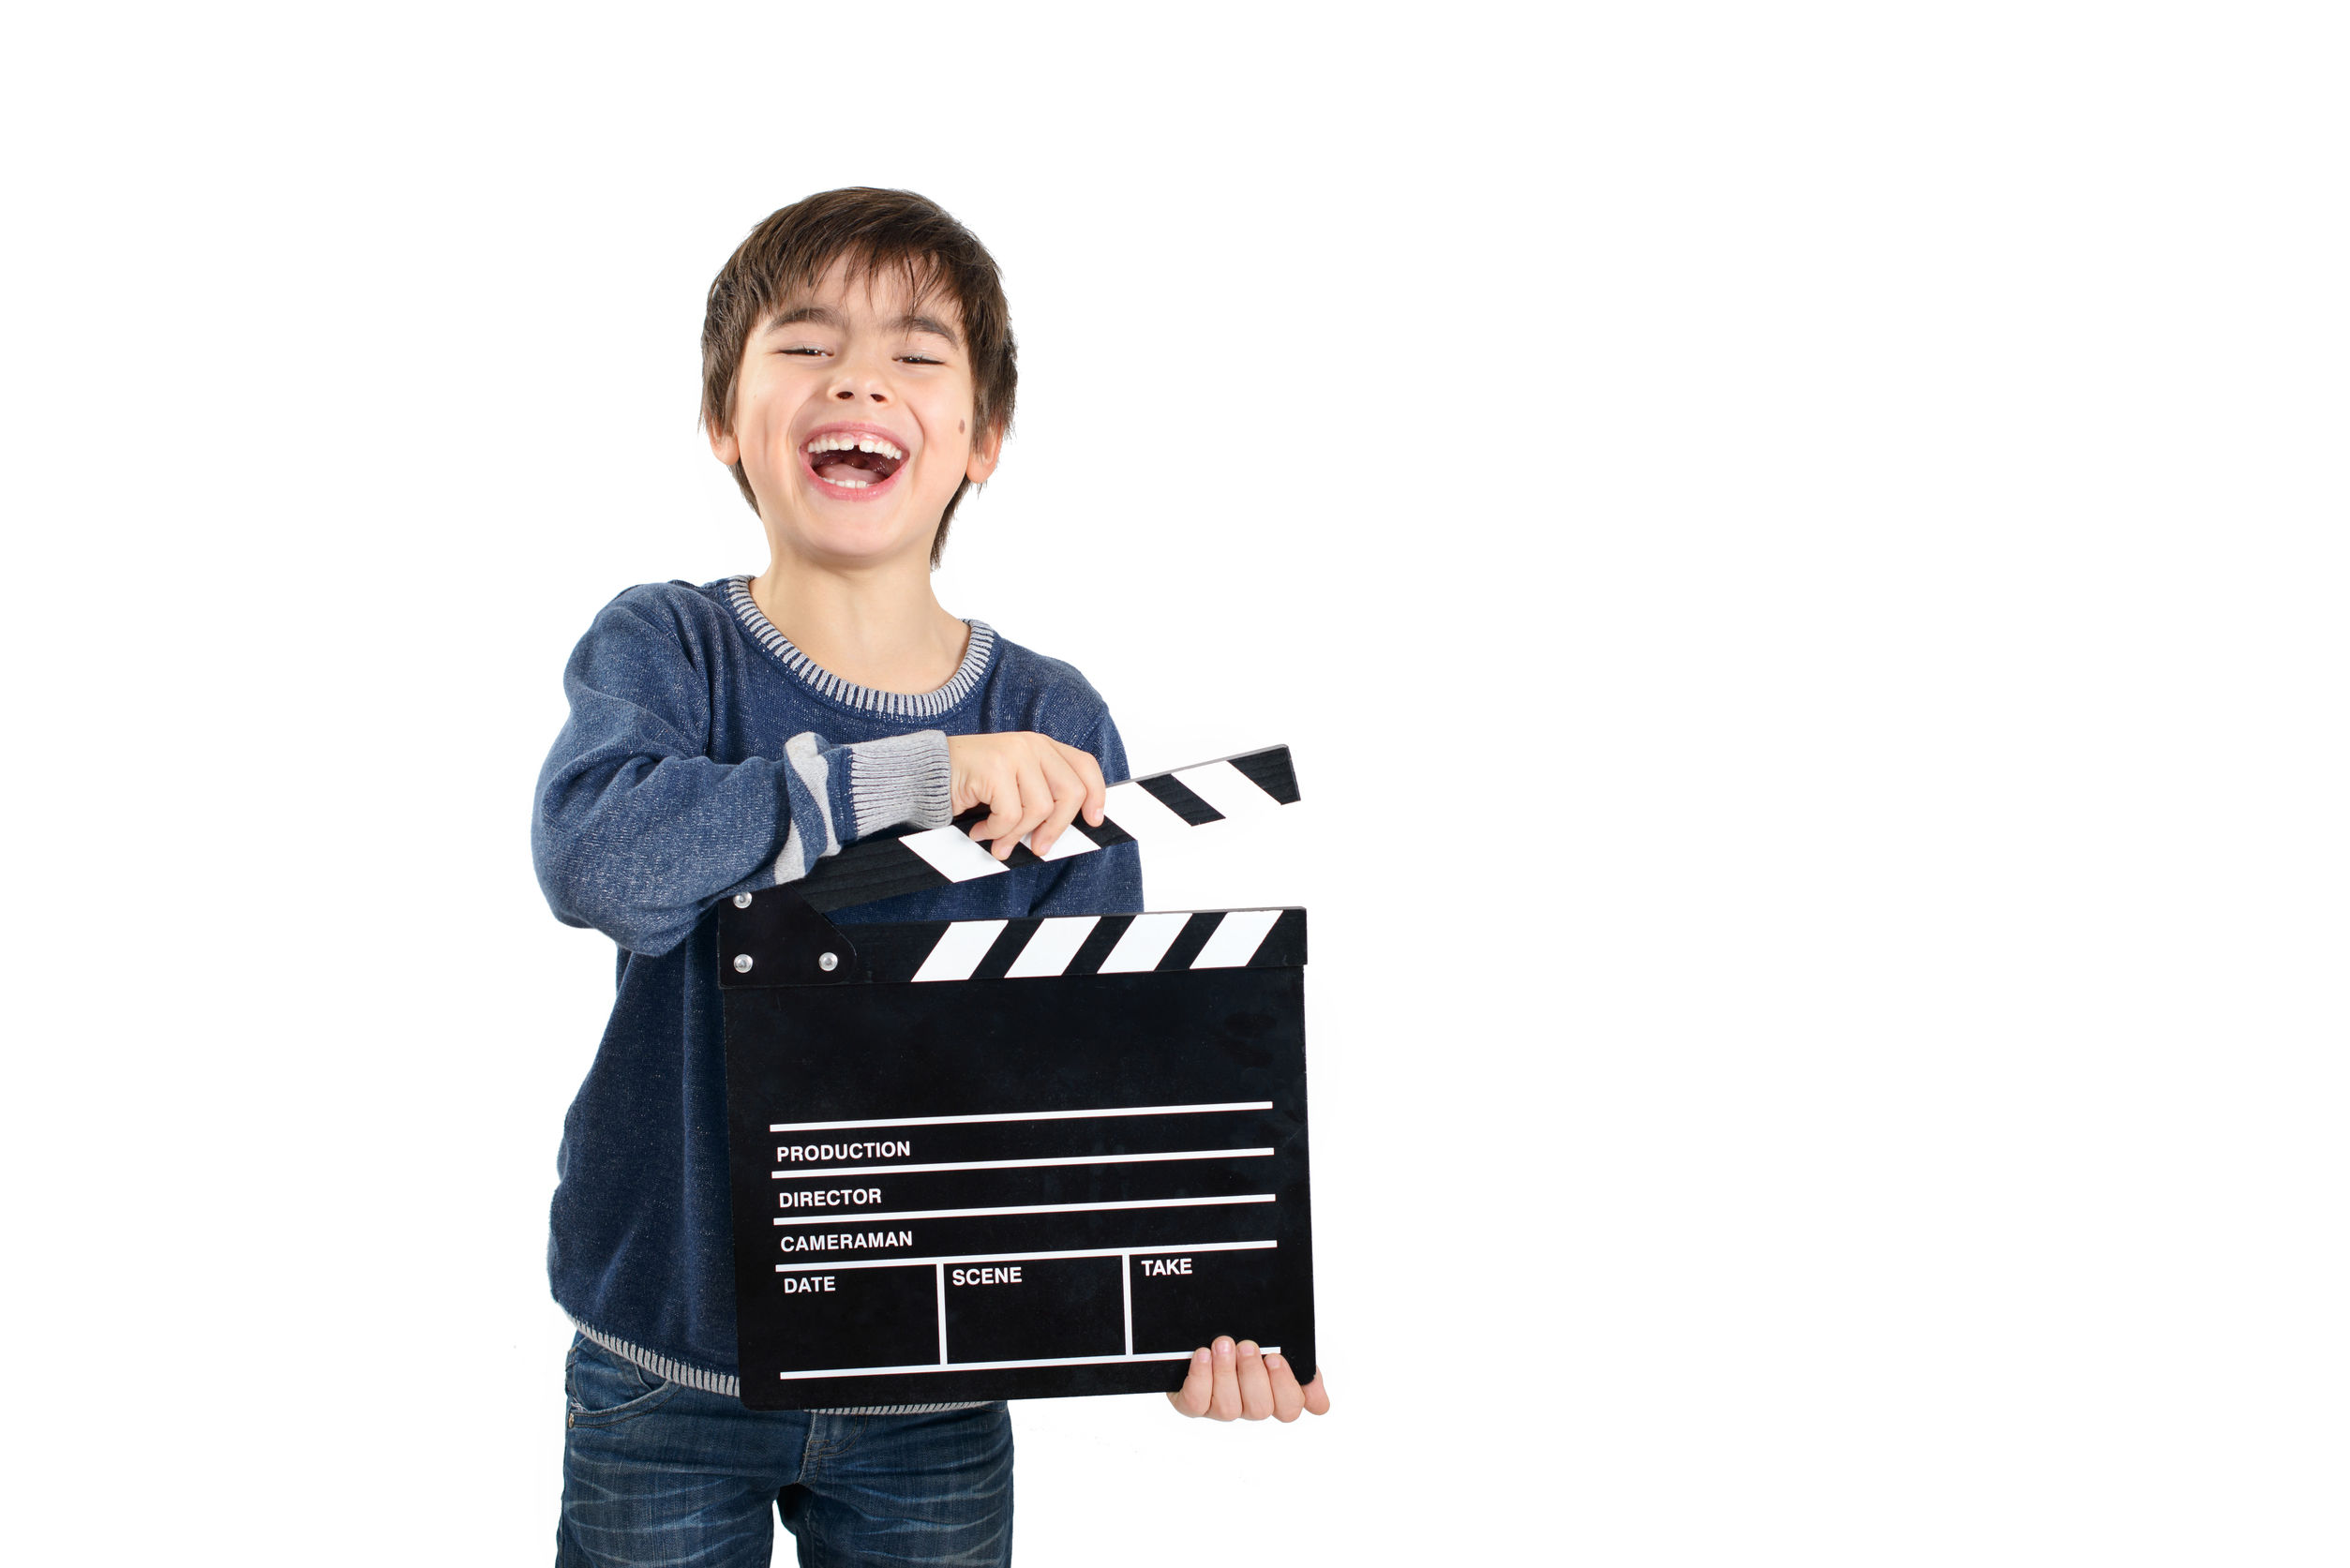 34719651 - laughing child holding clapperboard